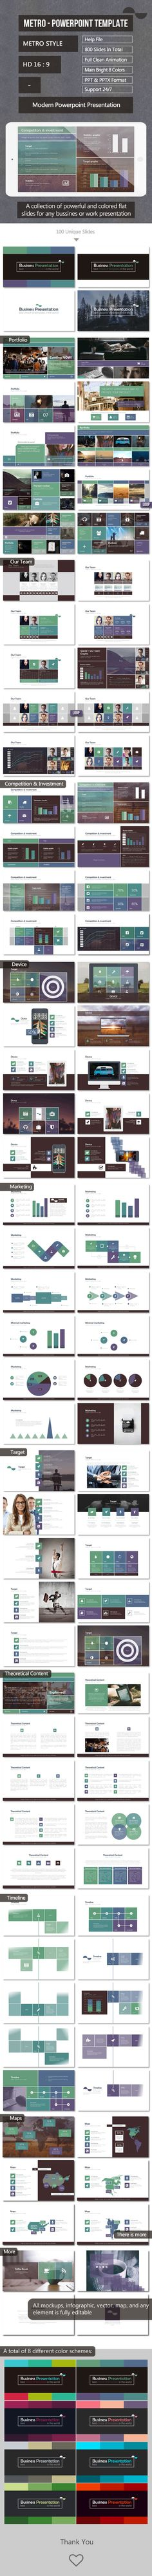 Balanced scorecard powerpoint business powerpoint templates metro powerpoint template toneelgroepblik Gallery